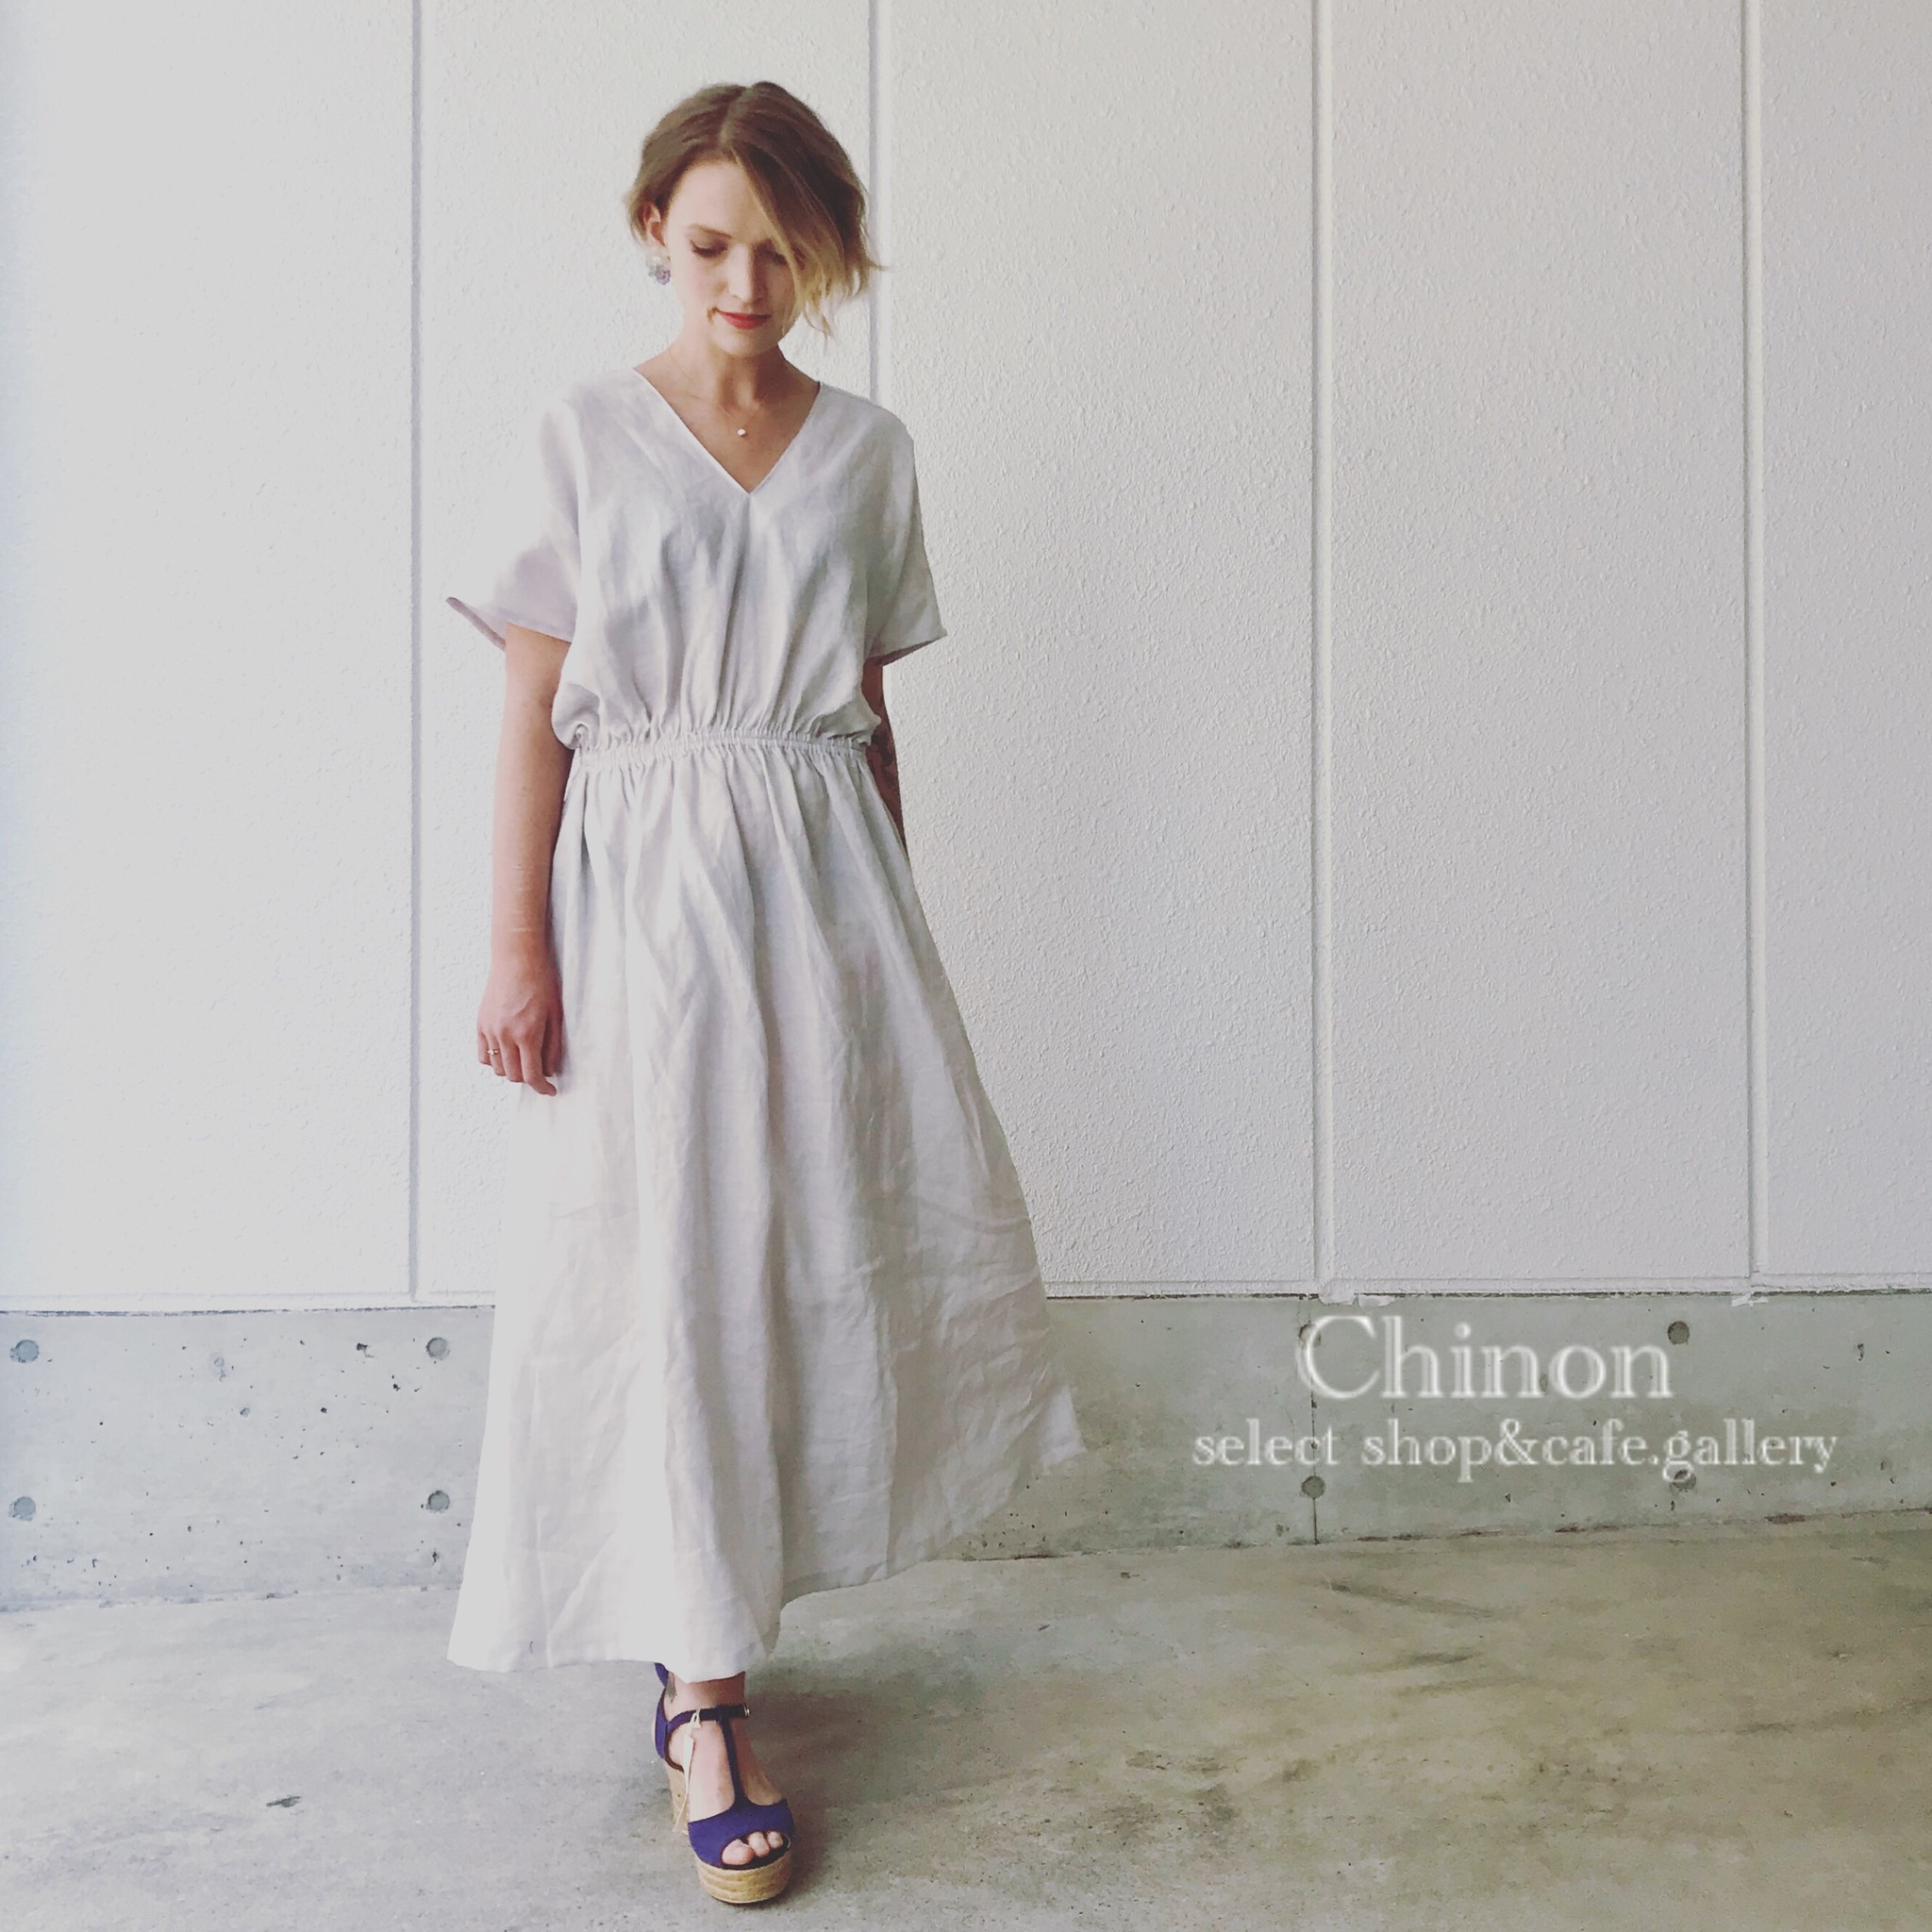 primrose closet  ★ Chinon   select shop